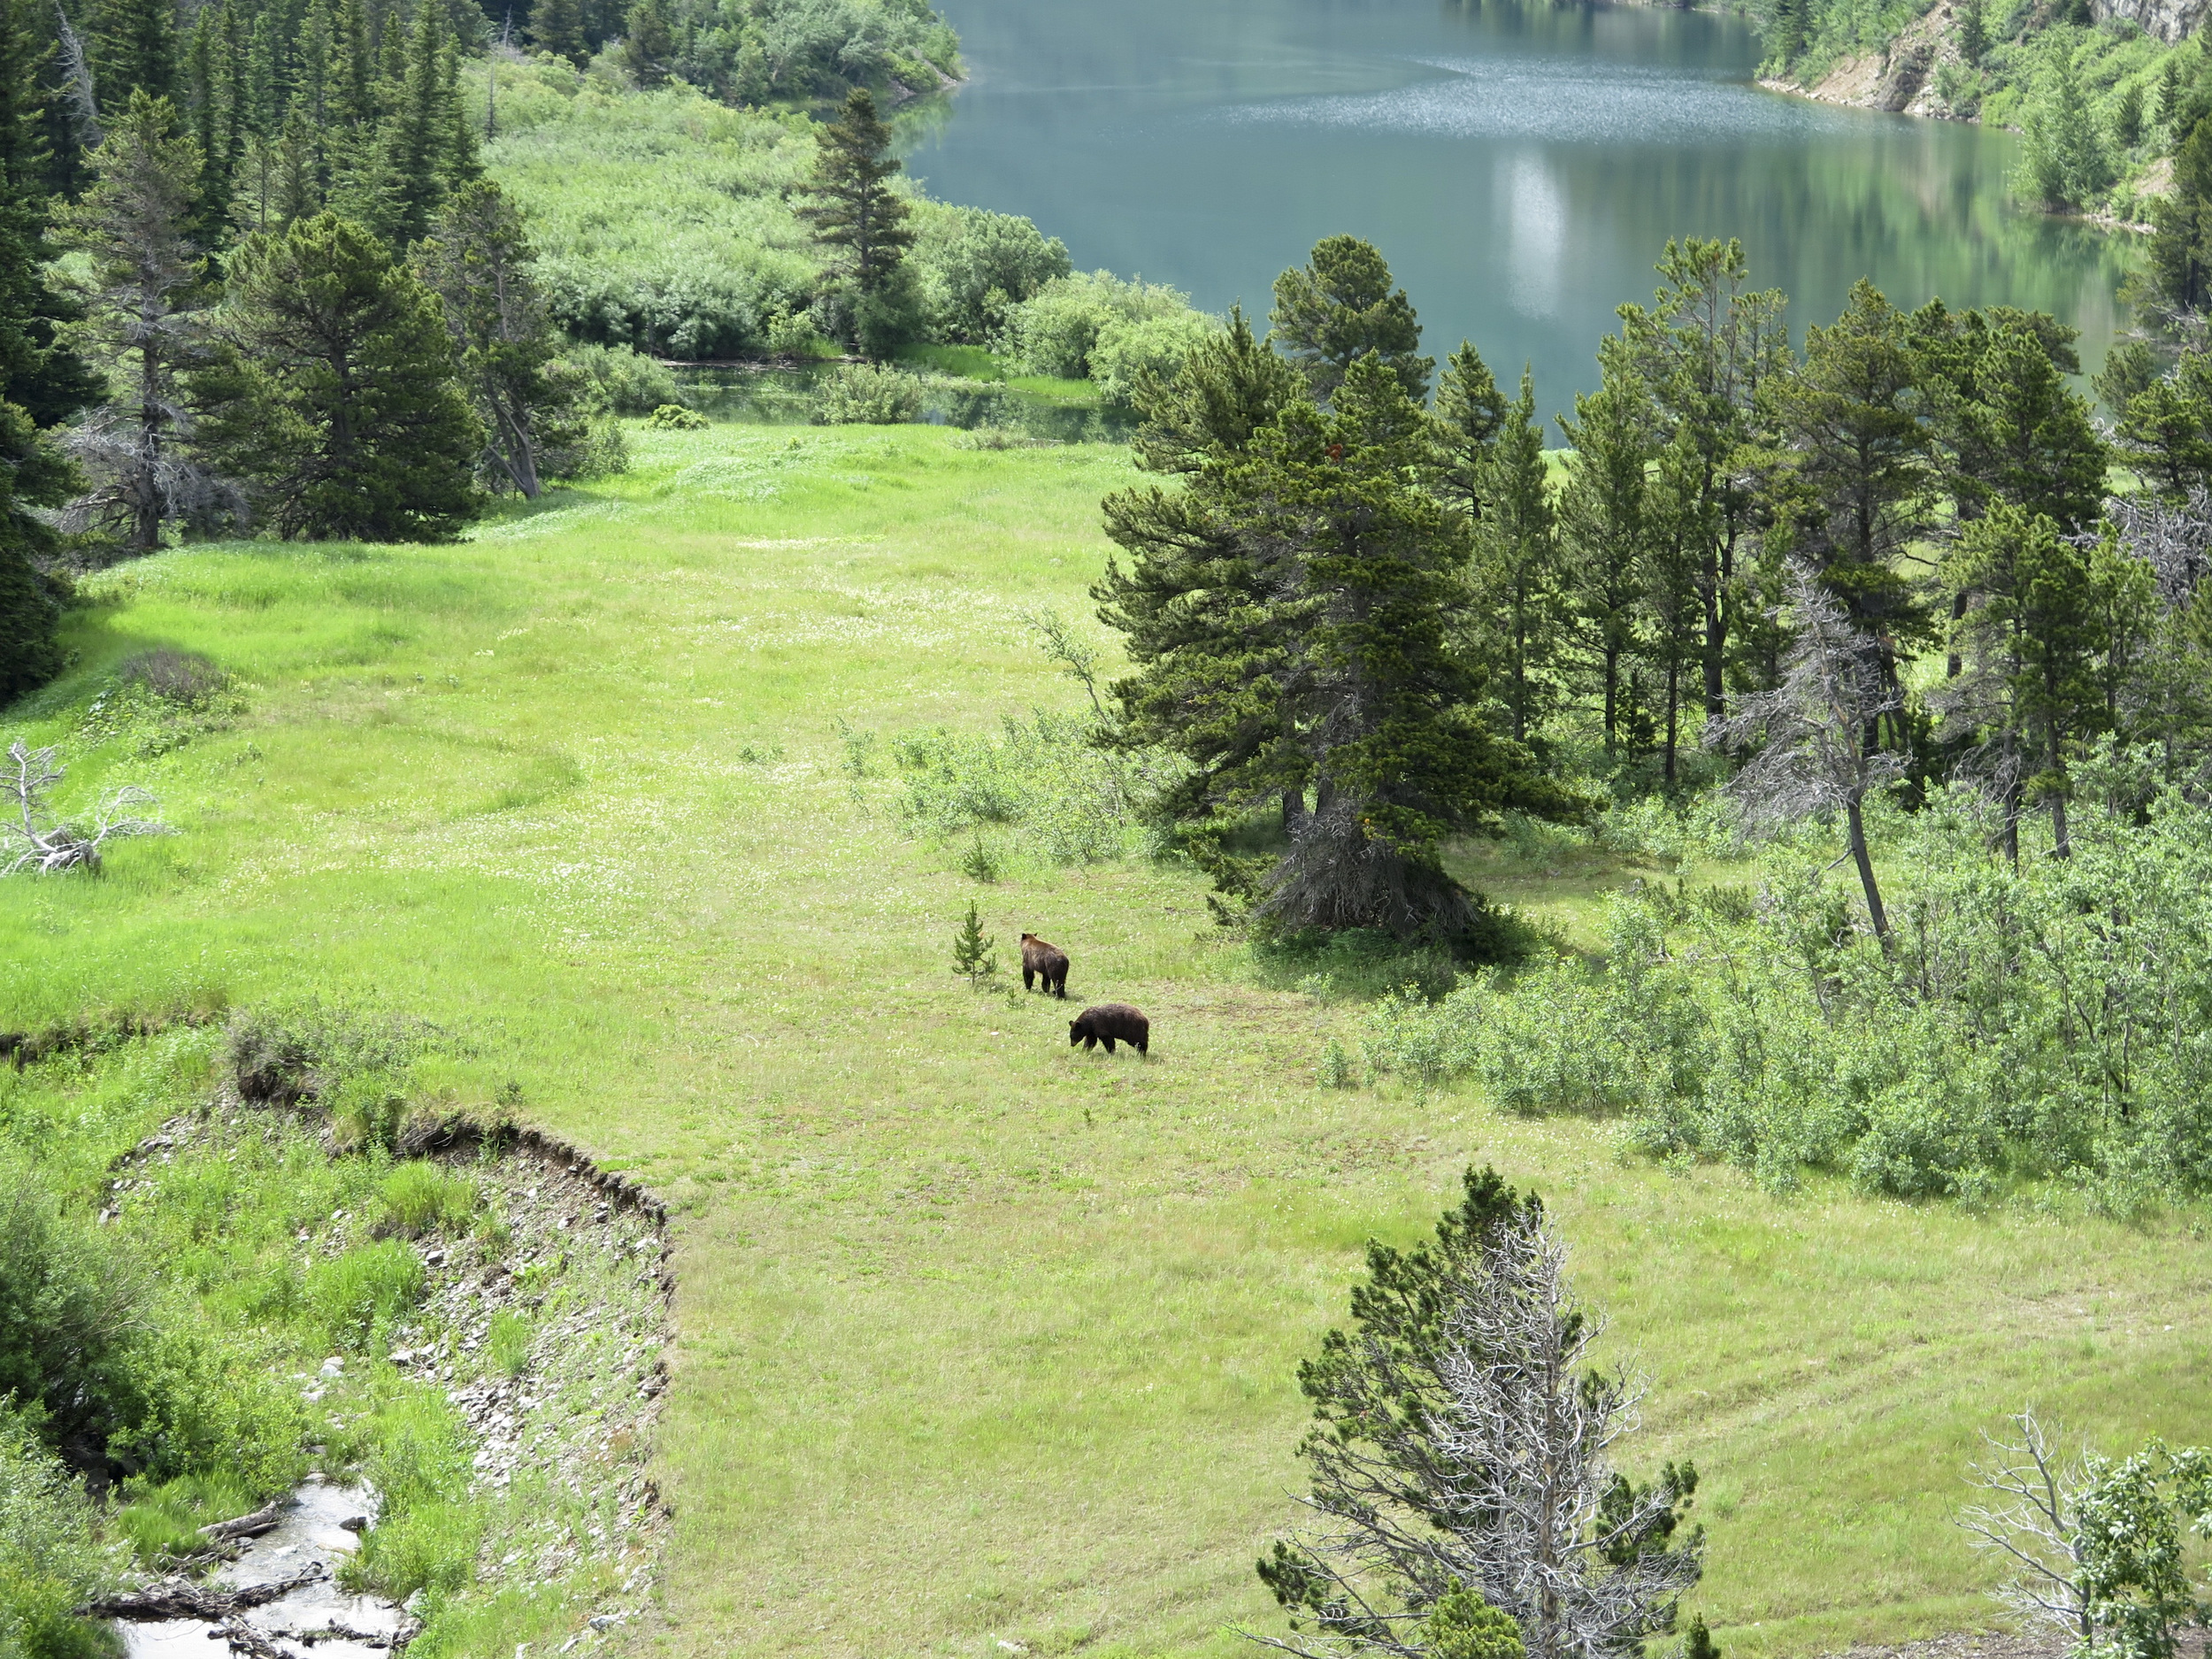 Grizzly bears in the valley